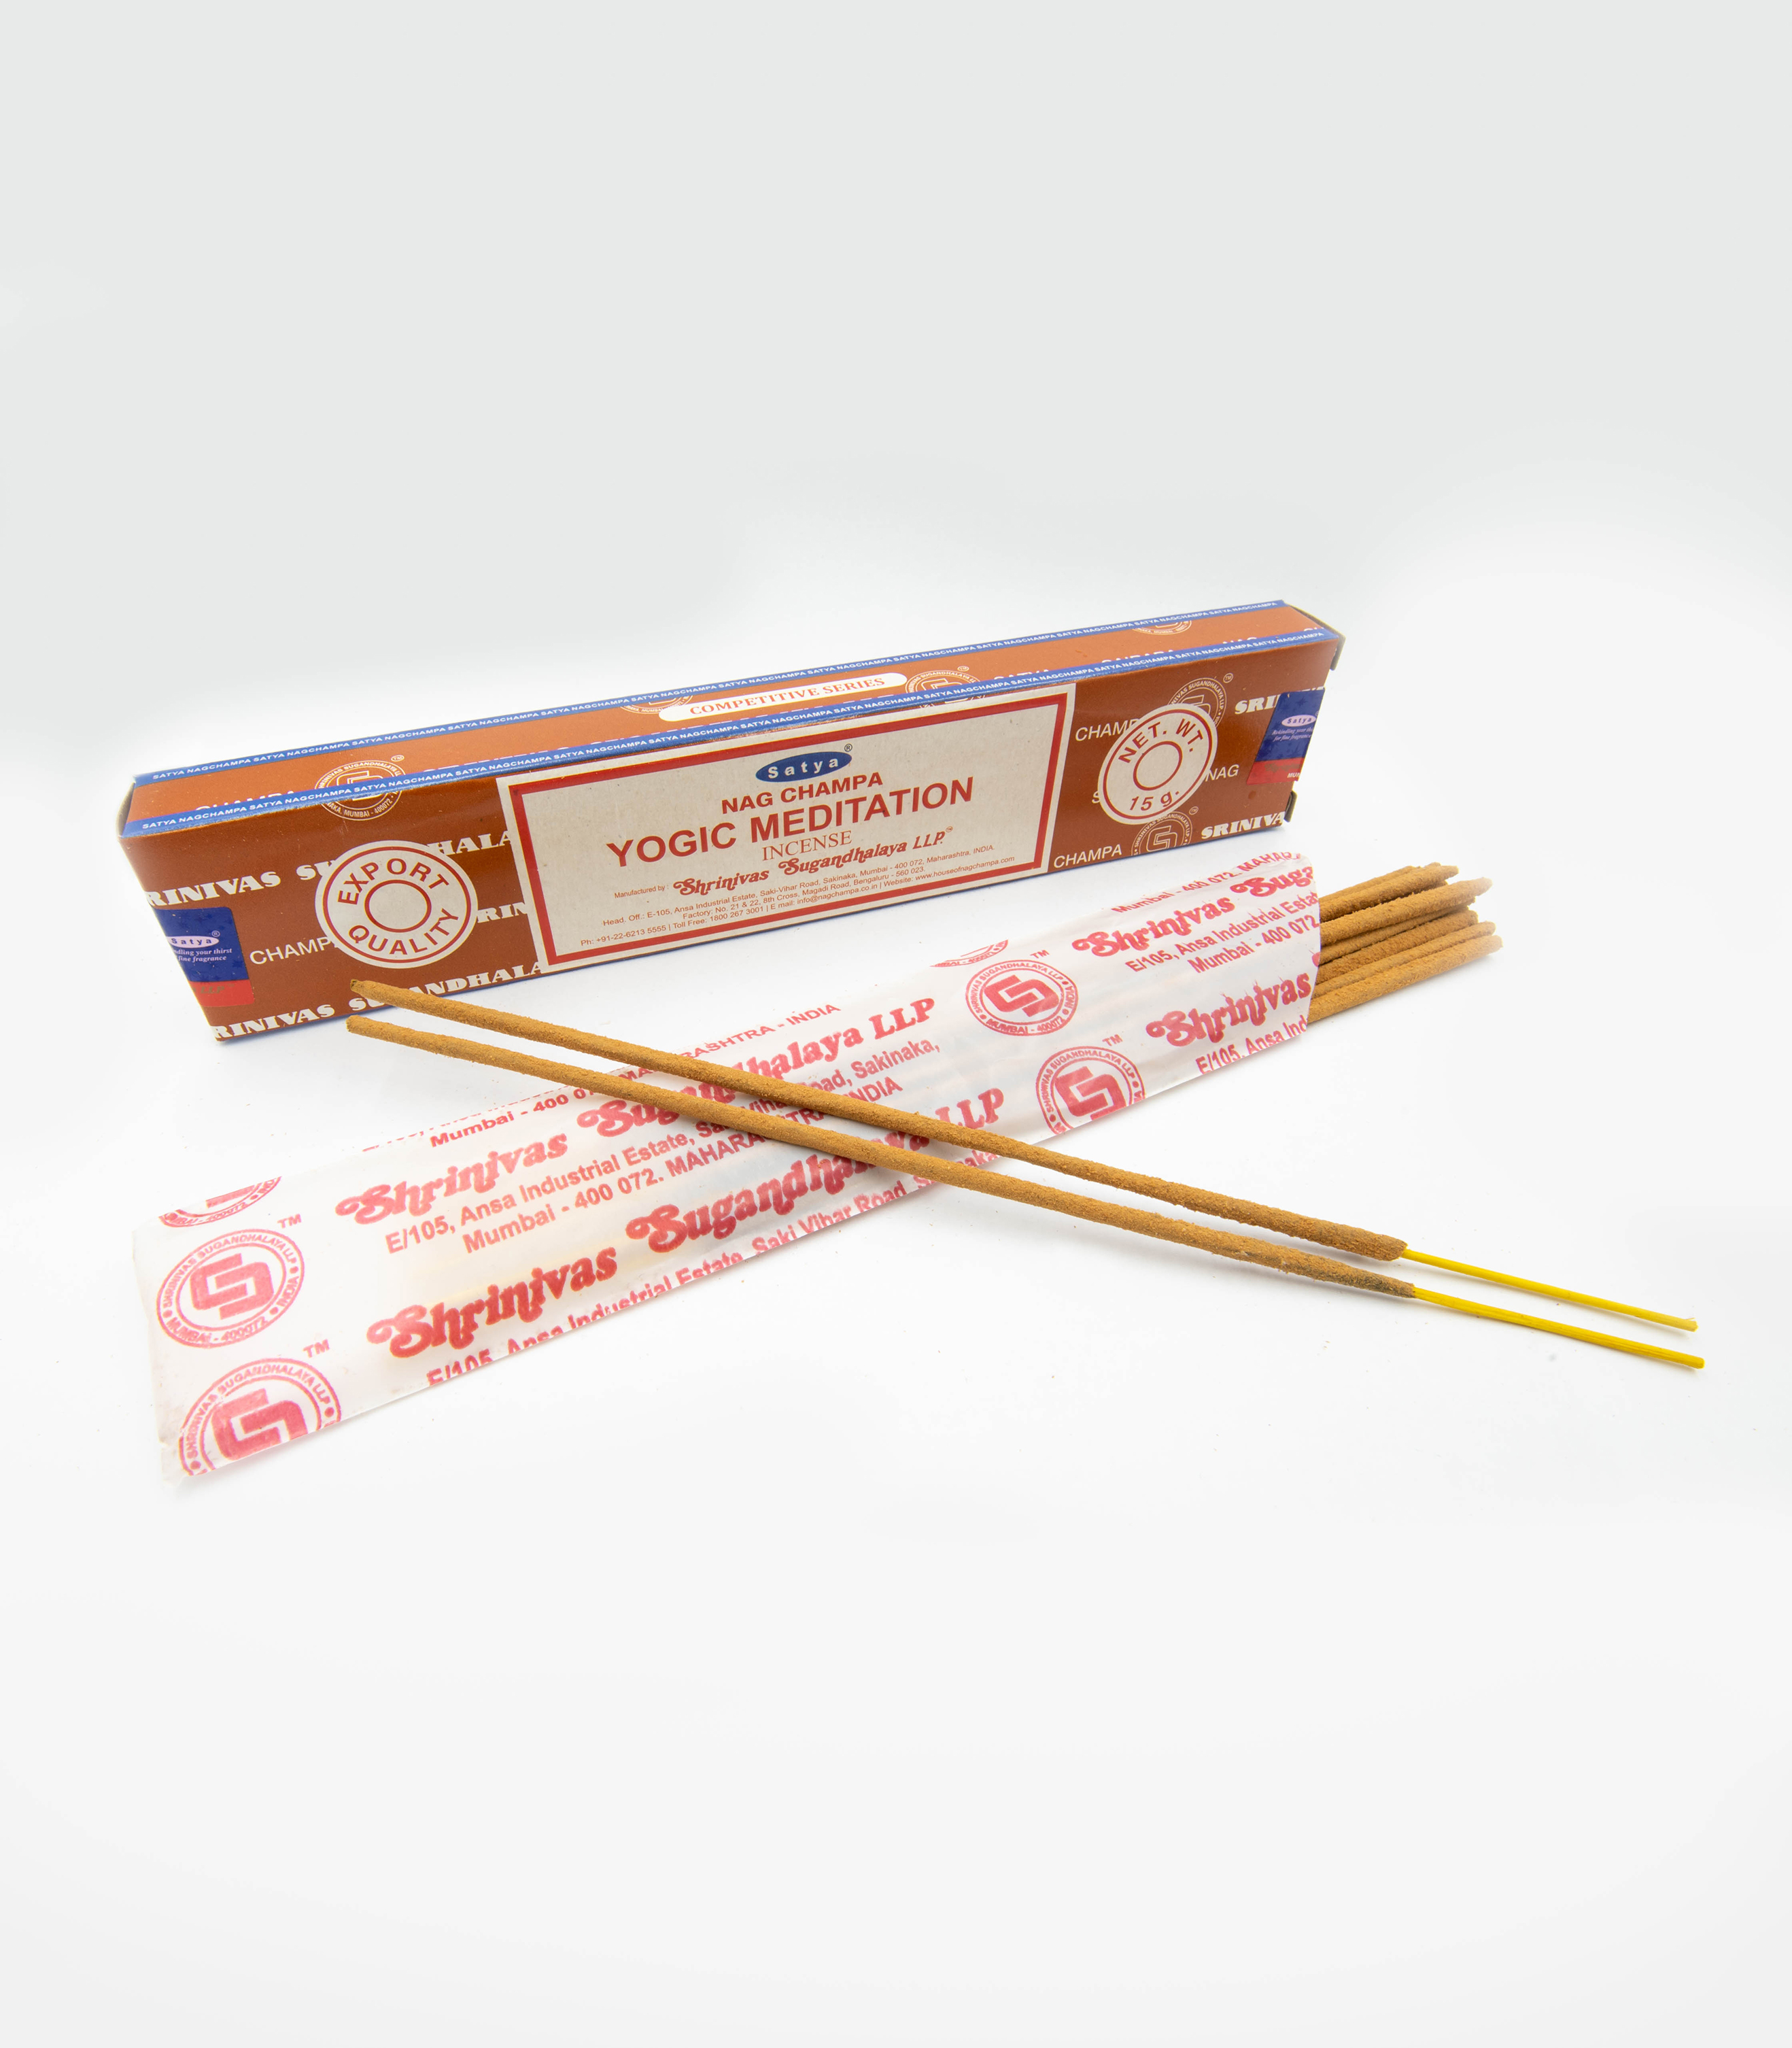 Nag Champa Yogic Meditation Incense Sticks